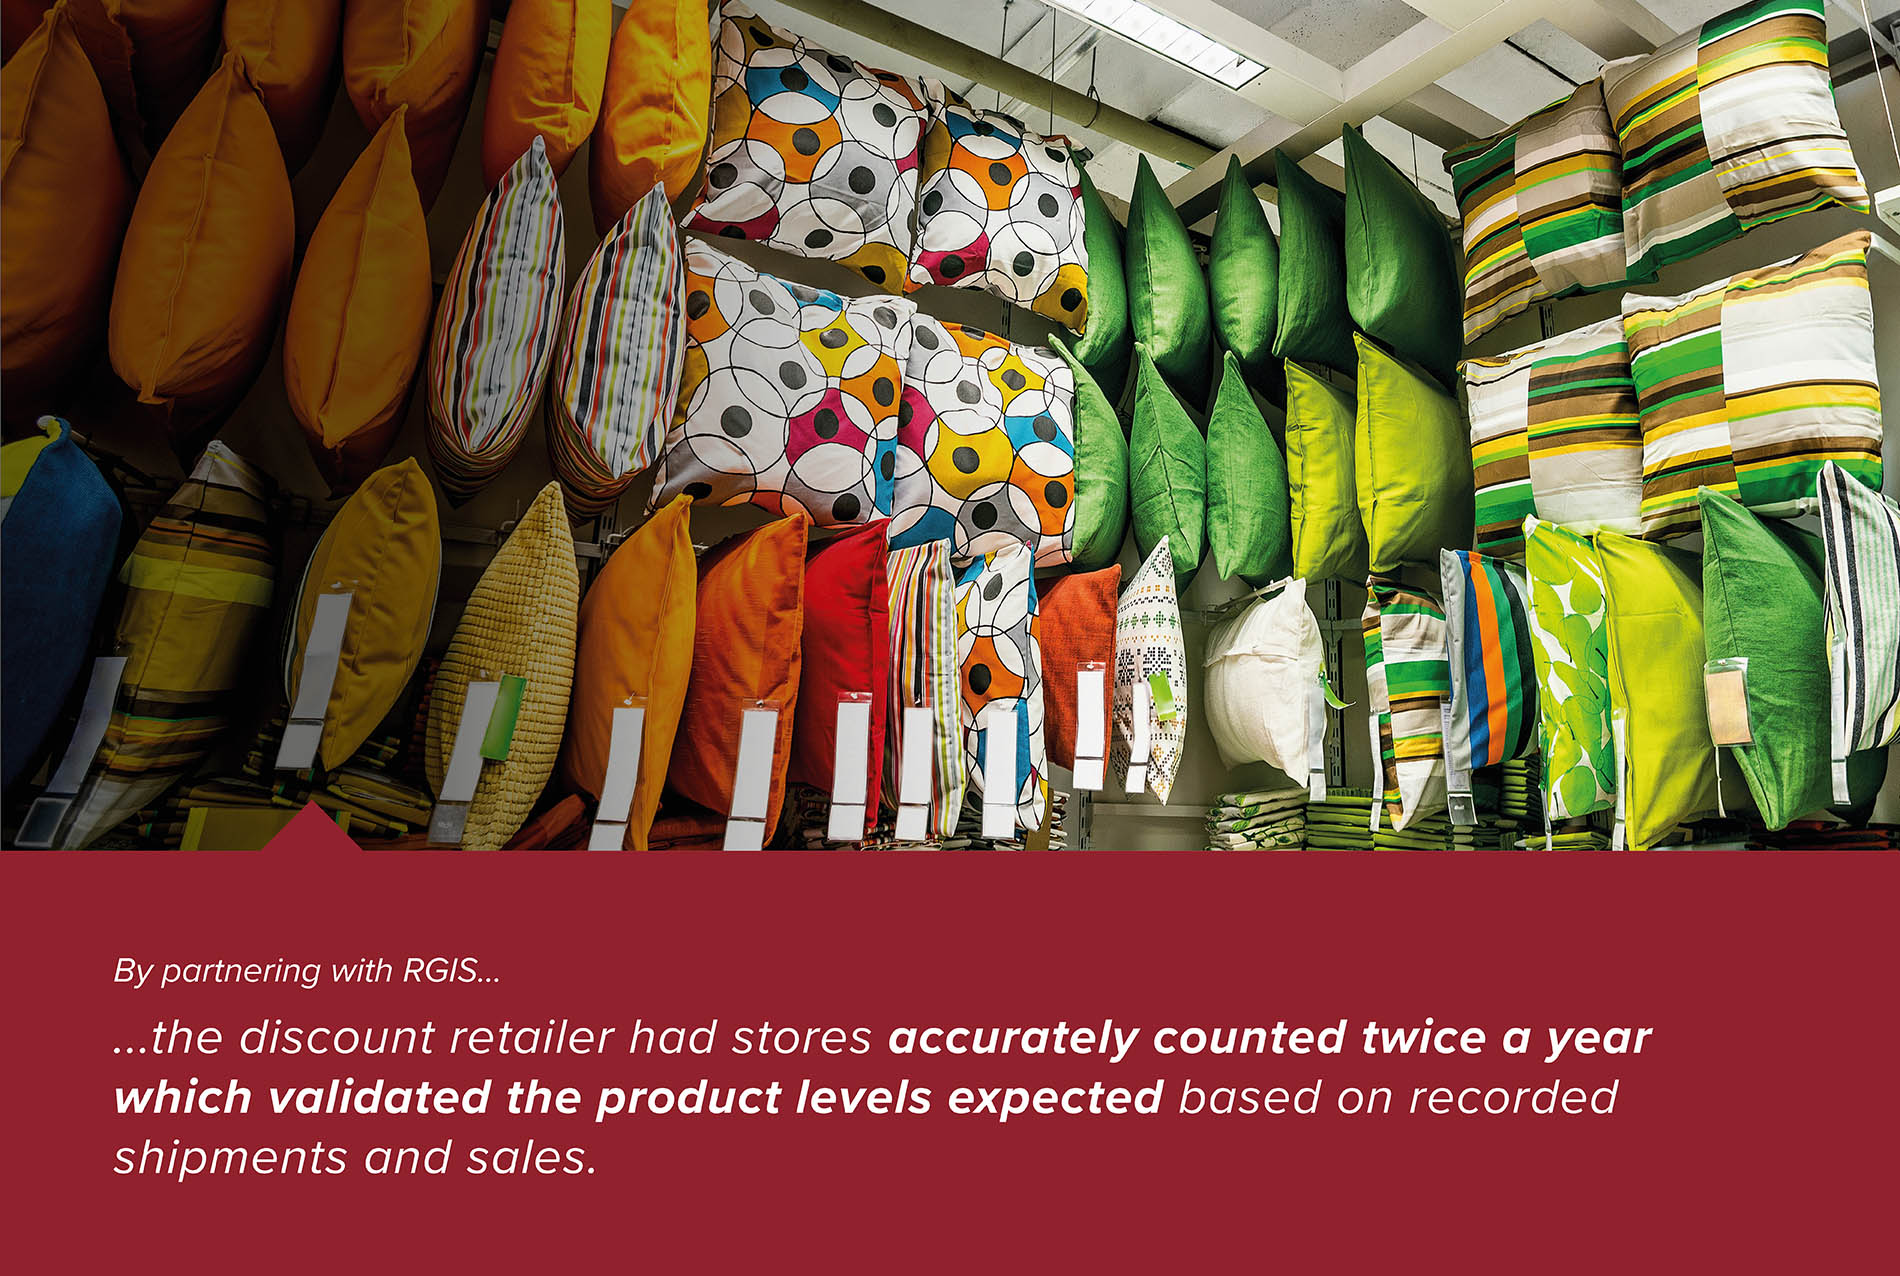 Discount Retailer Store Inventories to Manage Inventory Levels